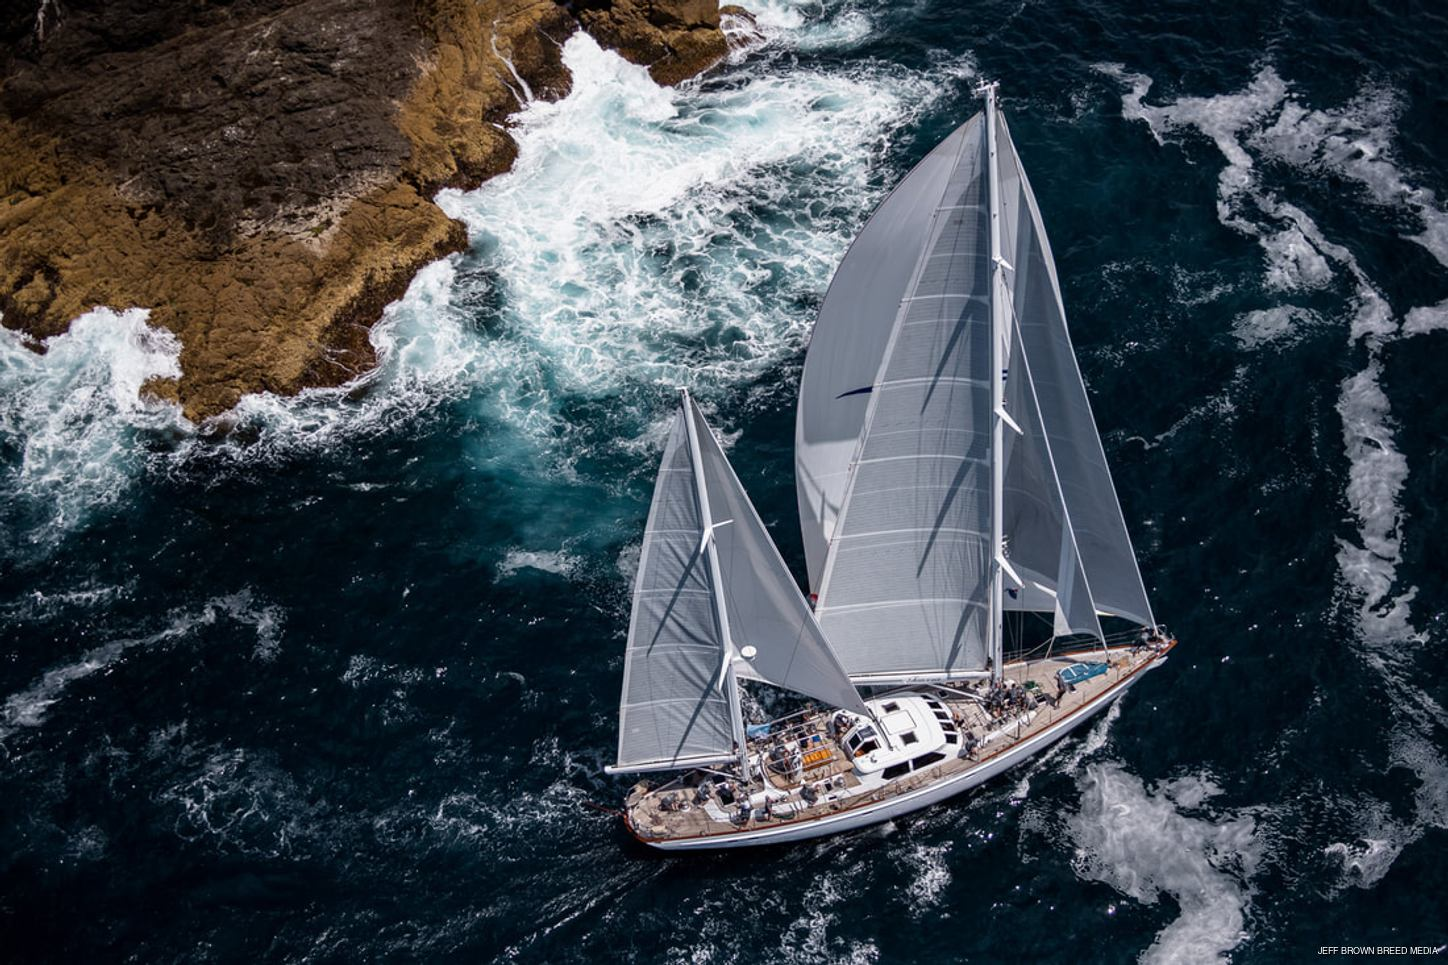 superyacht TAWERA competes at the NZ Millennium Cup 2019 in the Bay of Islands